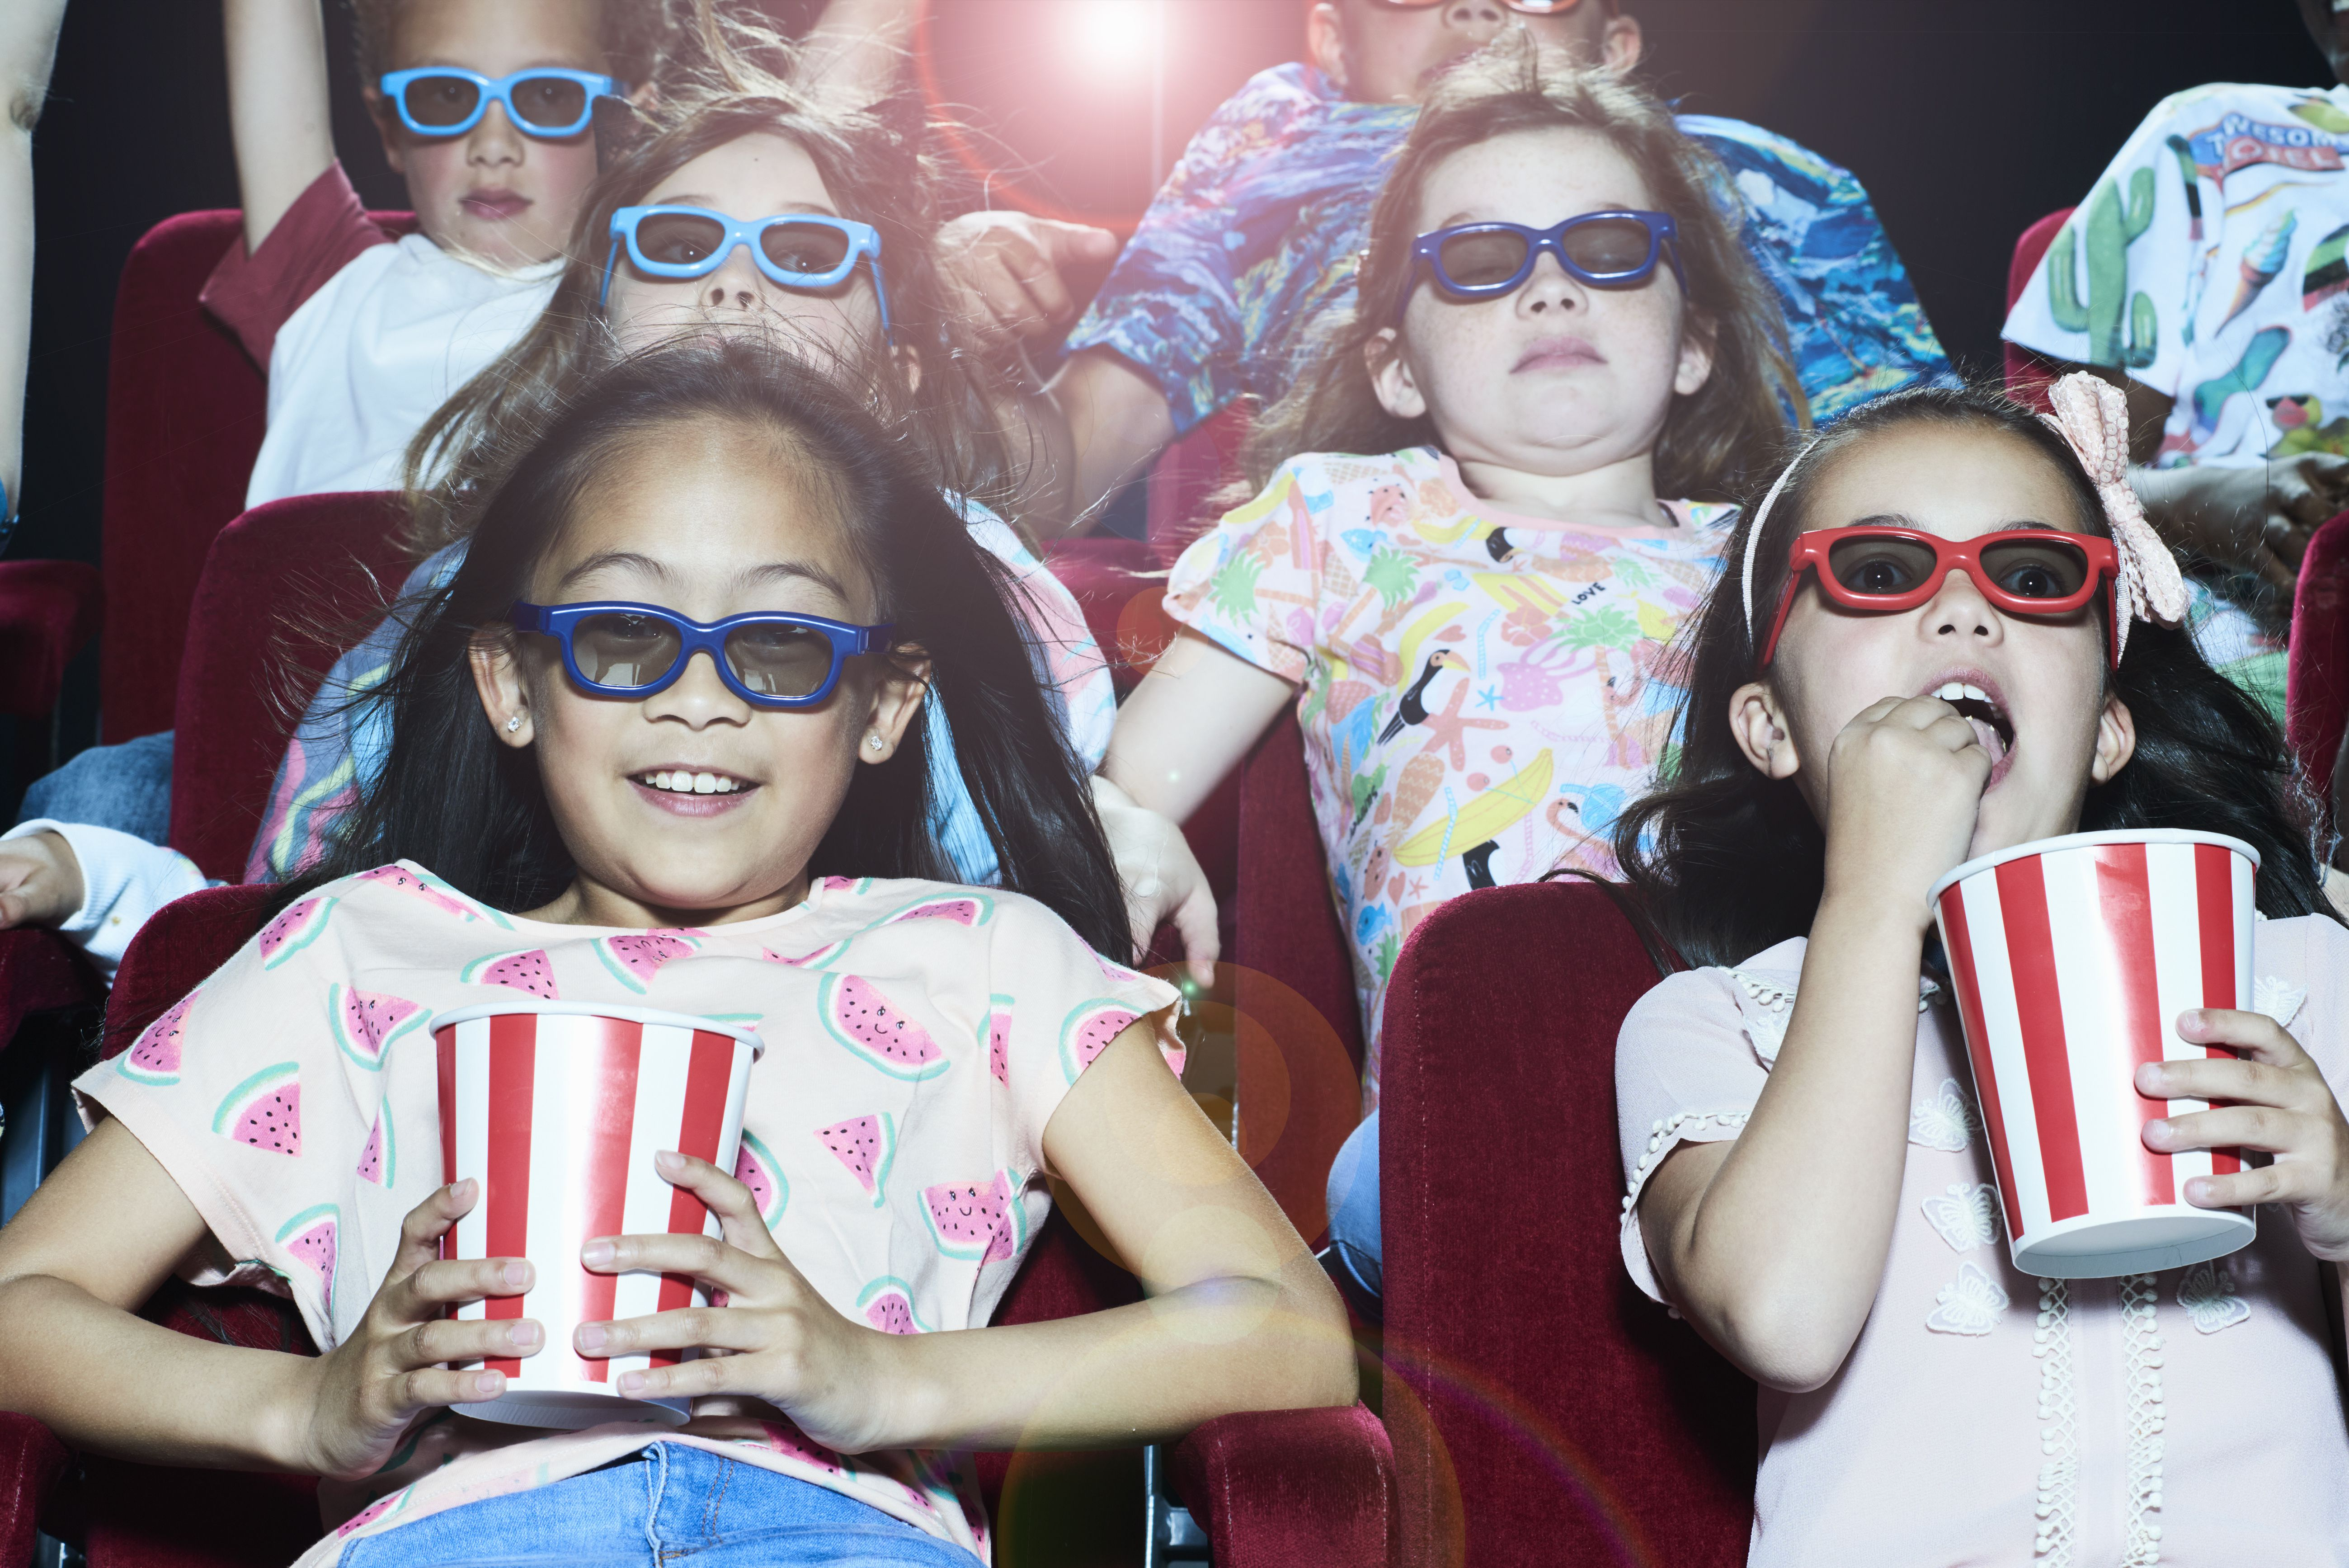 Group of children enjoying a 3D movie at the cinema